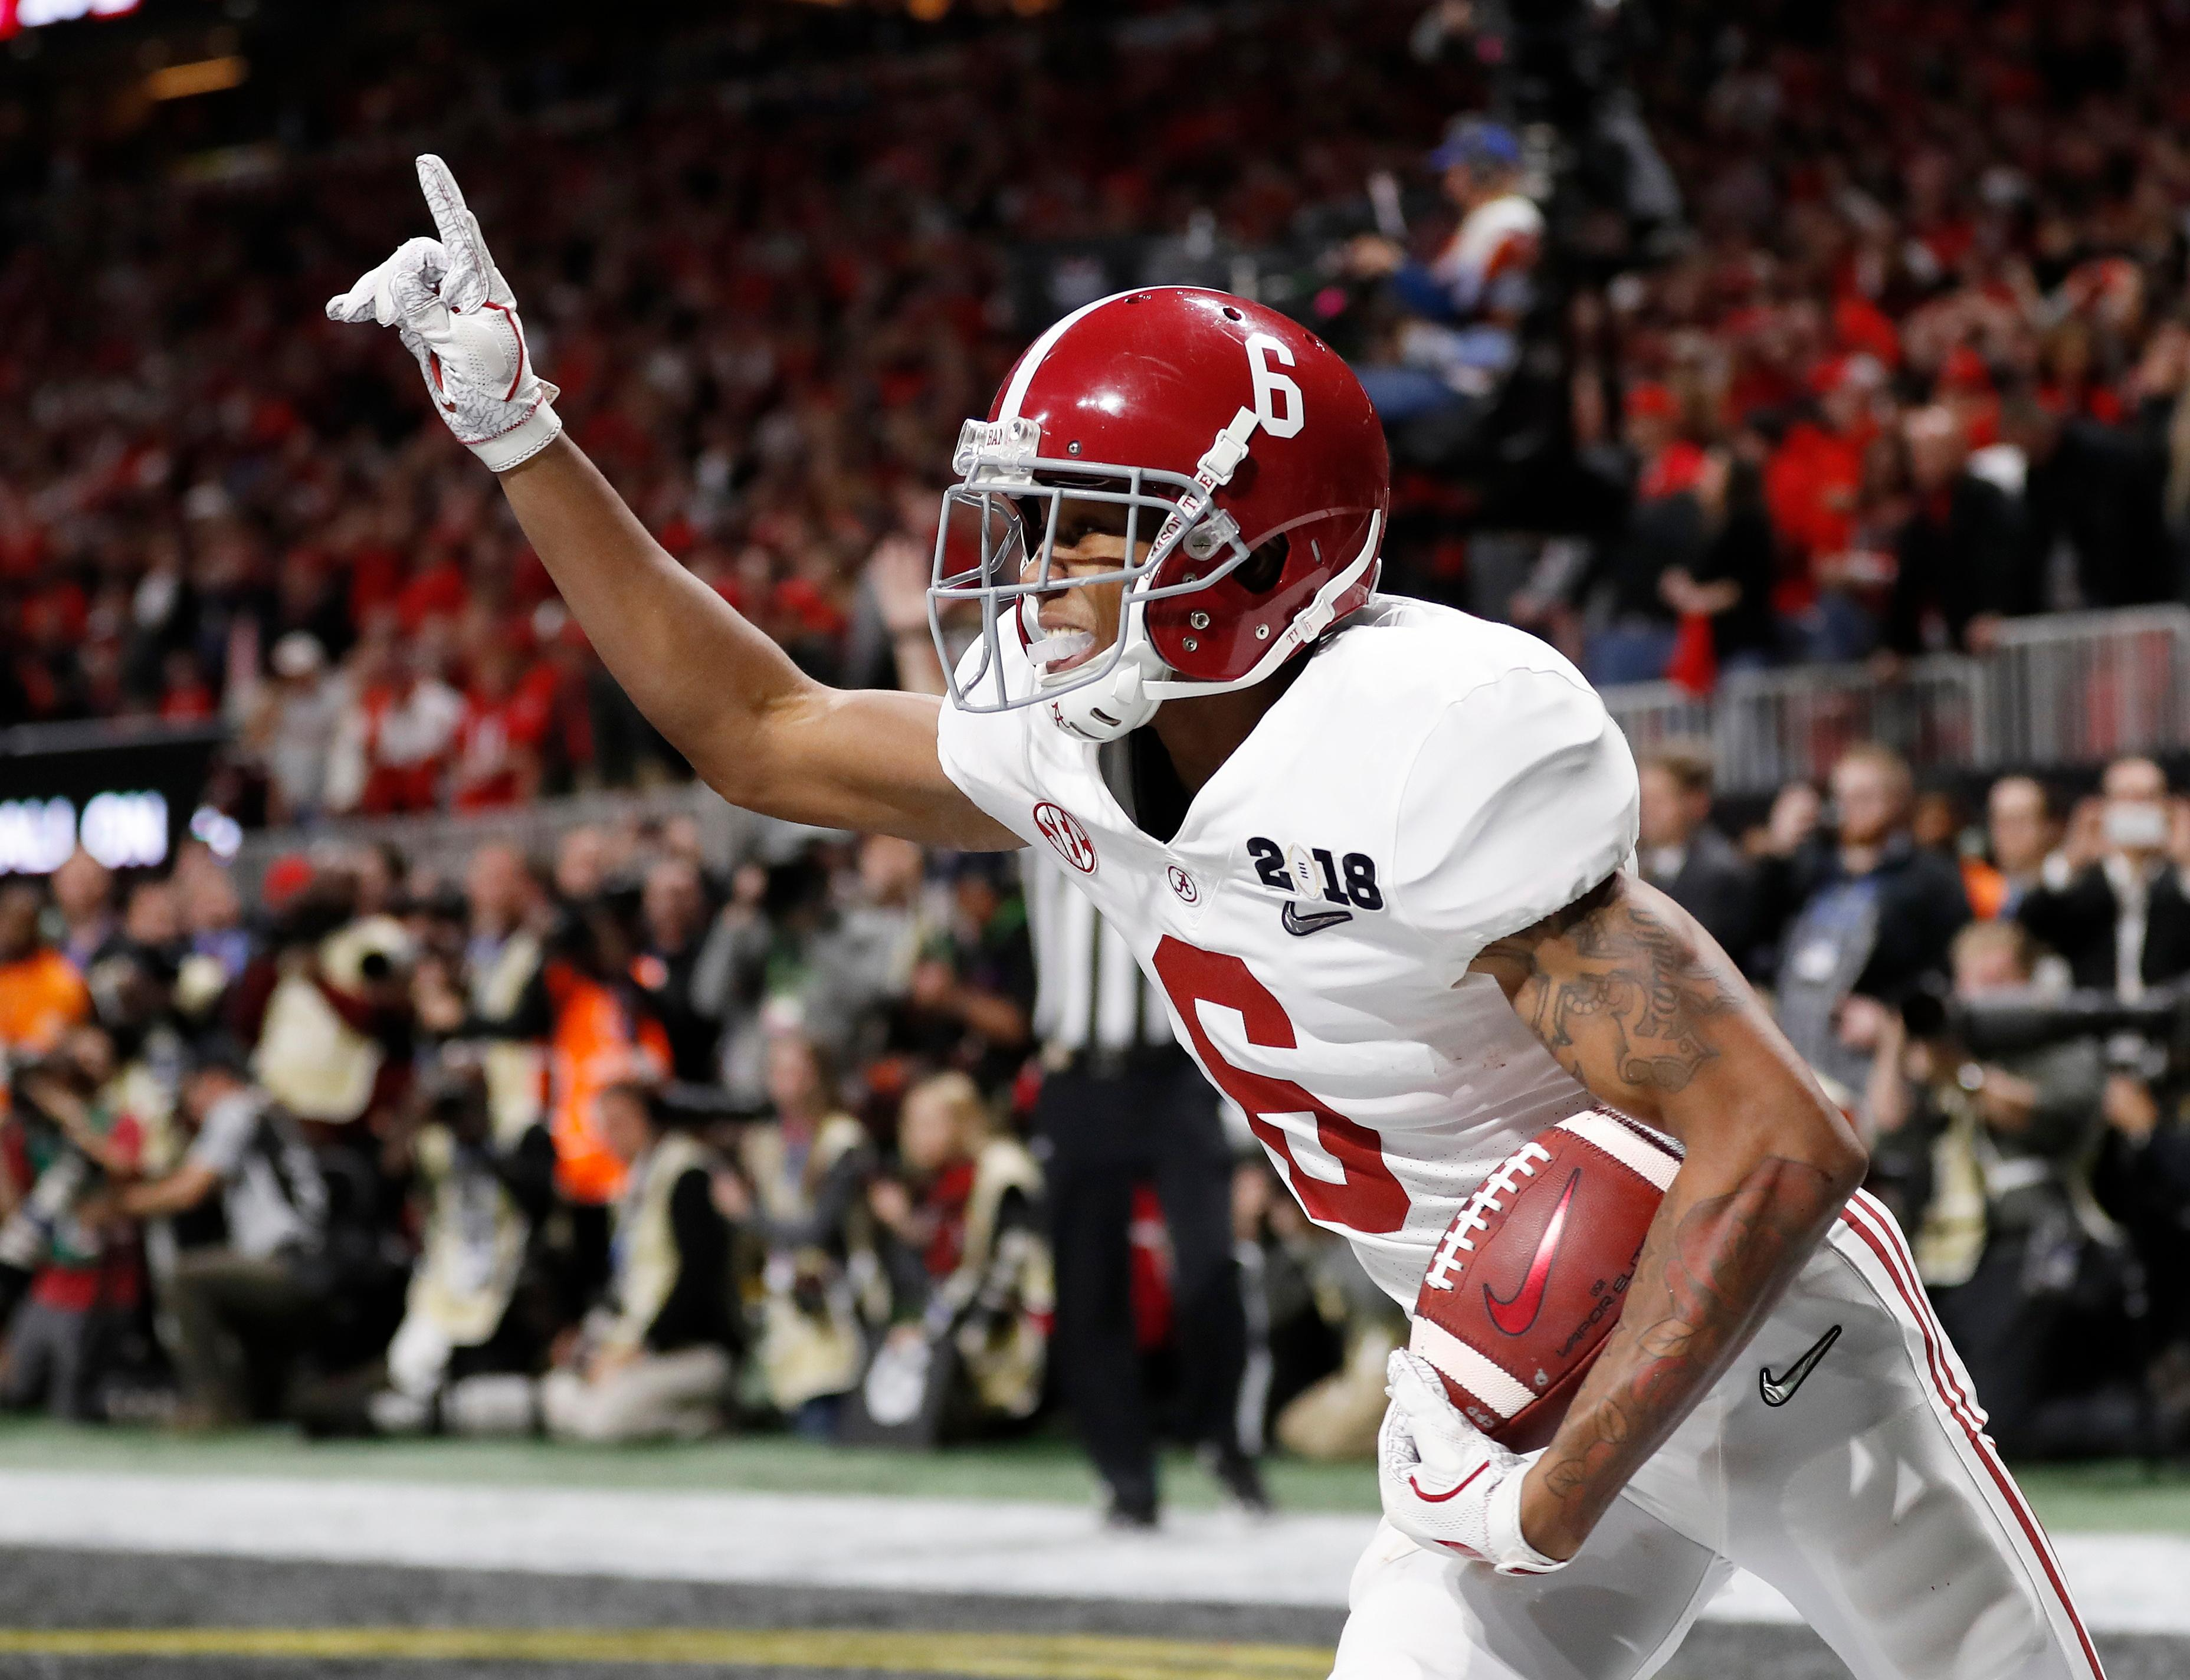 Alabama wide receiver DeVonta Smith (6) celebrates his touchdown during overtime of the NCAA college football playoff championship game against Georgia, Monday, Jan. 8, 2018, in Atlanta. Alabama won 26-23 in overtime. (AP Photo/David Goldman)